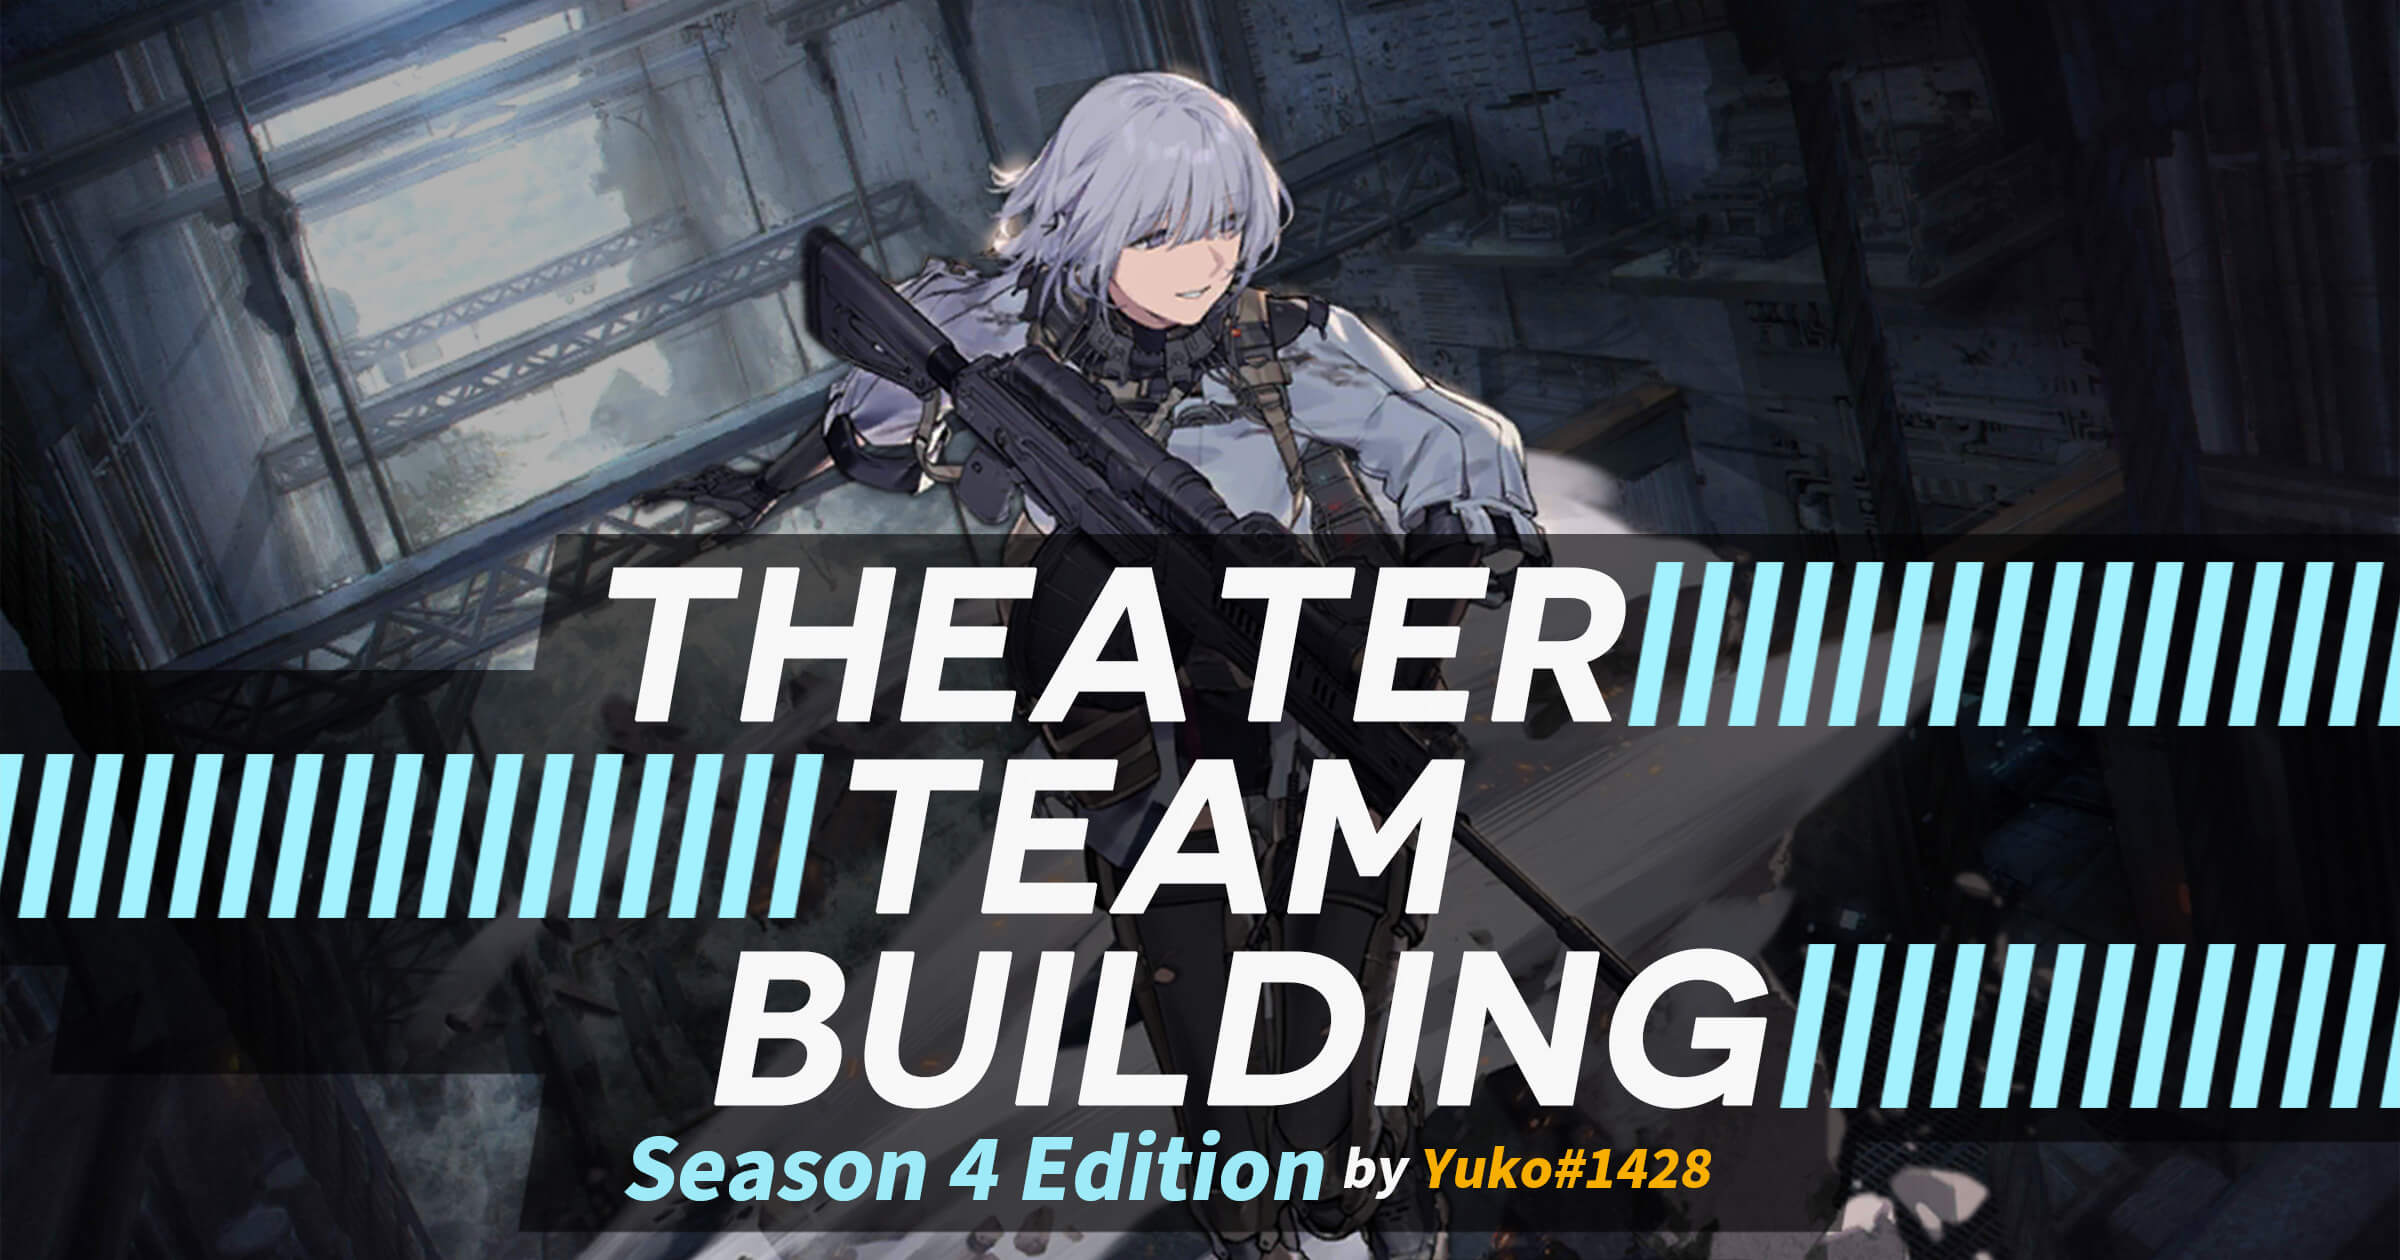 Theater Teambuilding Guide S4 Featuring RPK-16